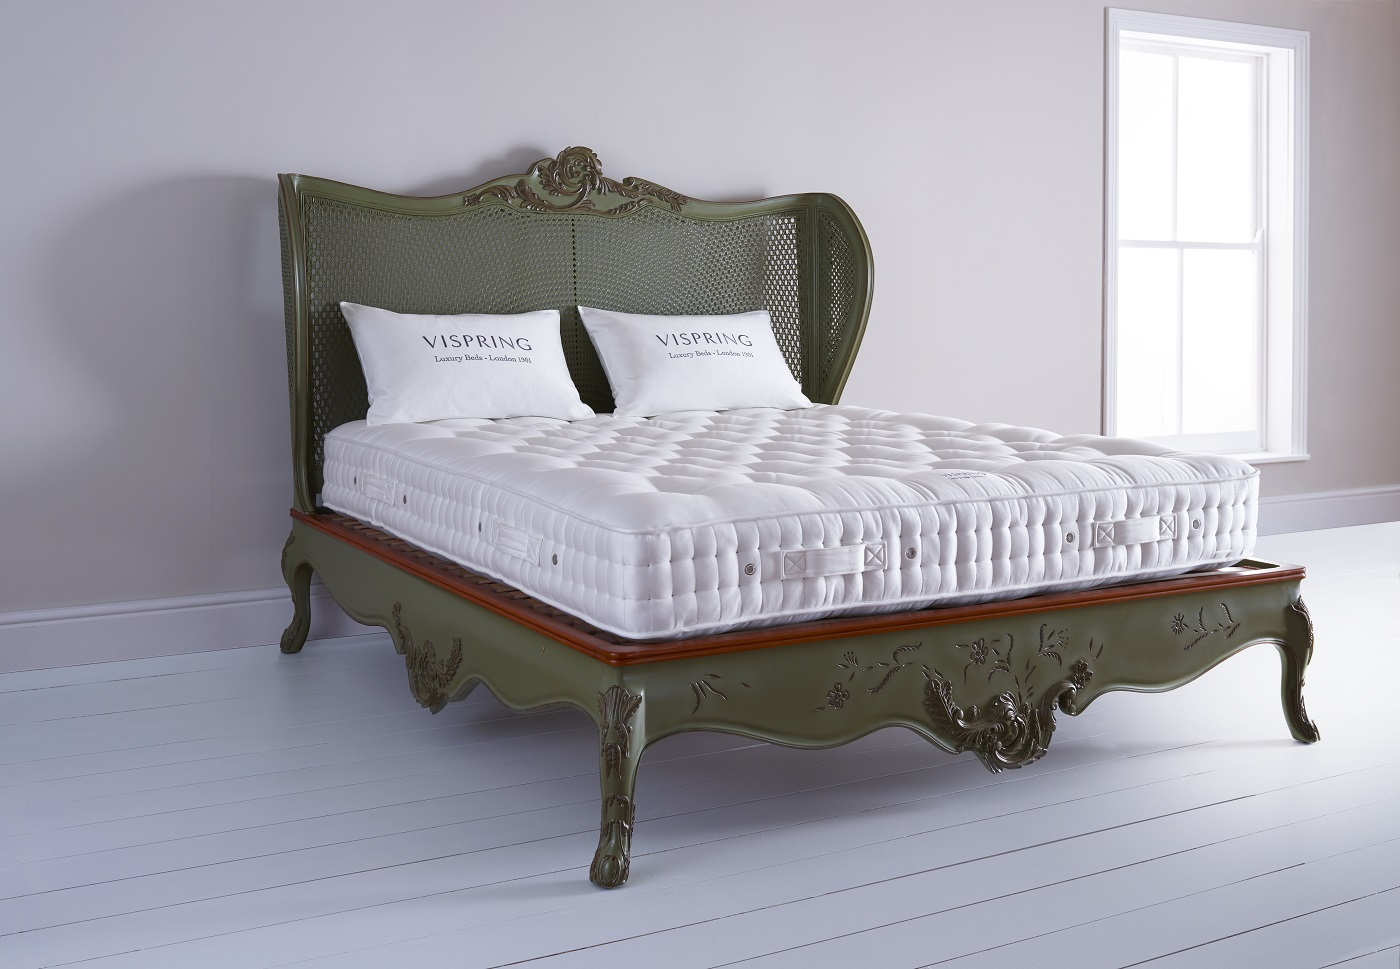 VISPRING Bedstead Traditional